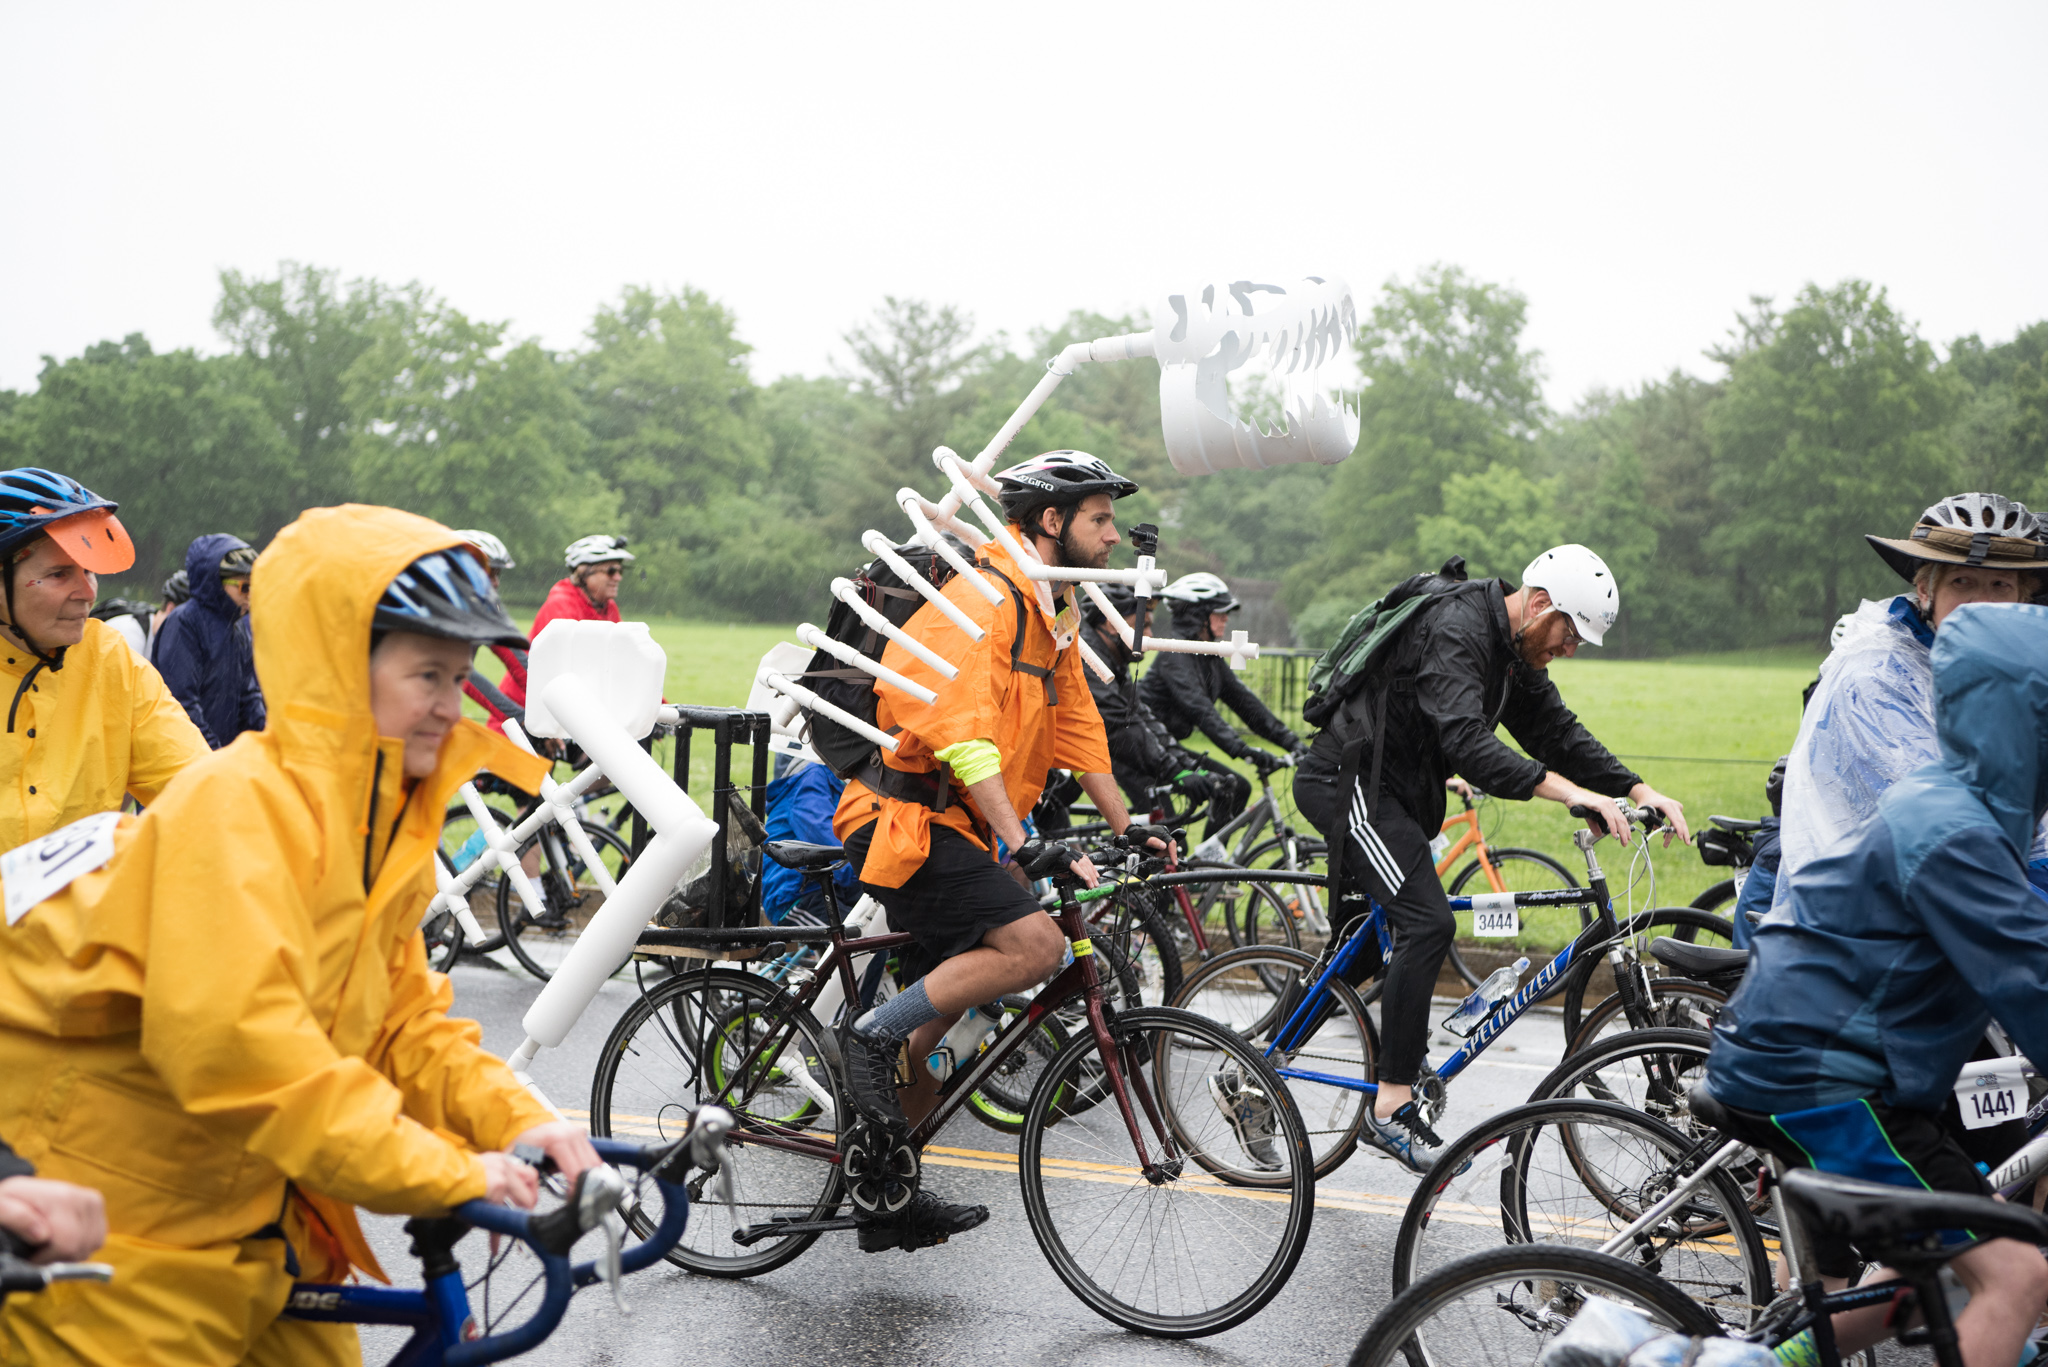 The third annual DC Bike Ride, a{ }closed-road, recreational bike ride, returned to the streets of D.C. on Saturday, May 19 2018. Despite the days-on-end raining, thousands{ } of participants{ } from all over the country showed up bright and early to take a scenic bike tour of D.C. Riders could choose from a 20-mile course, or a six-mile shortcut to the finish line.{ }The event has also raised $70,000+ for WABA's vision zero education programming. (Image: Jeff Martin/ DC Refined)